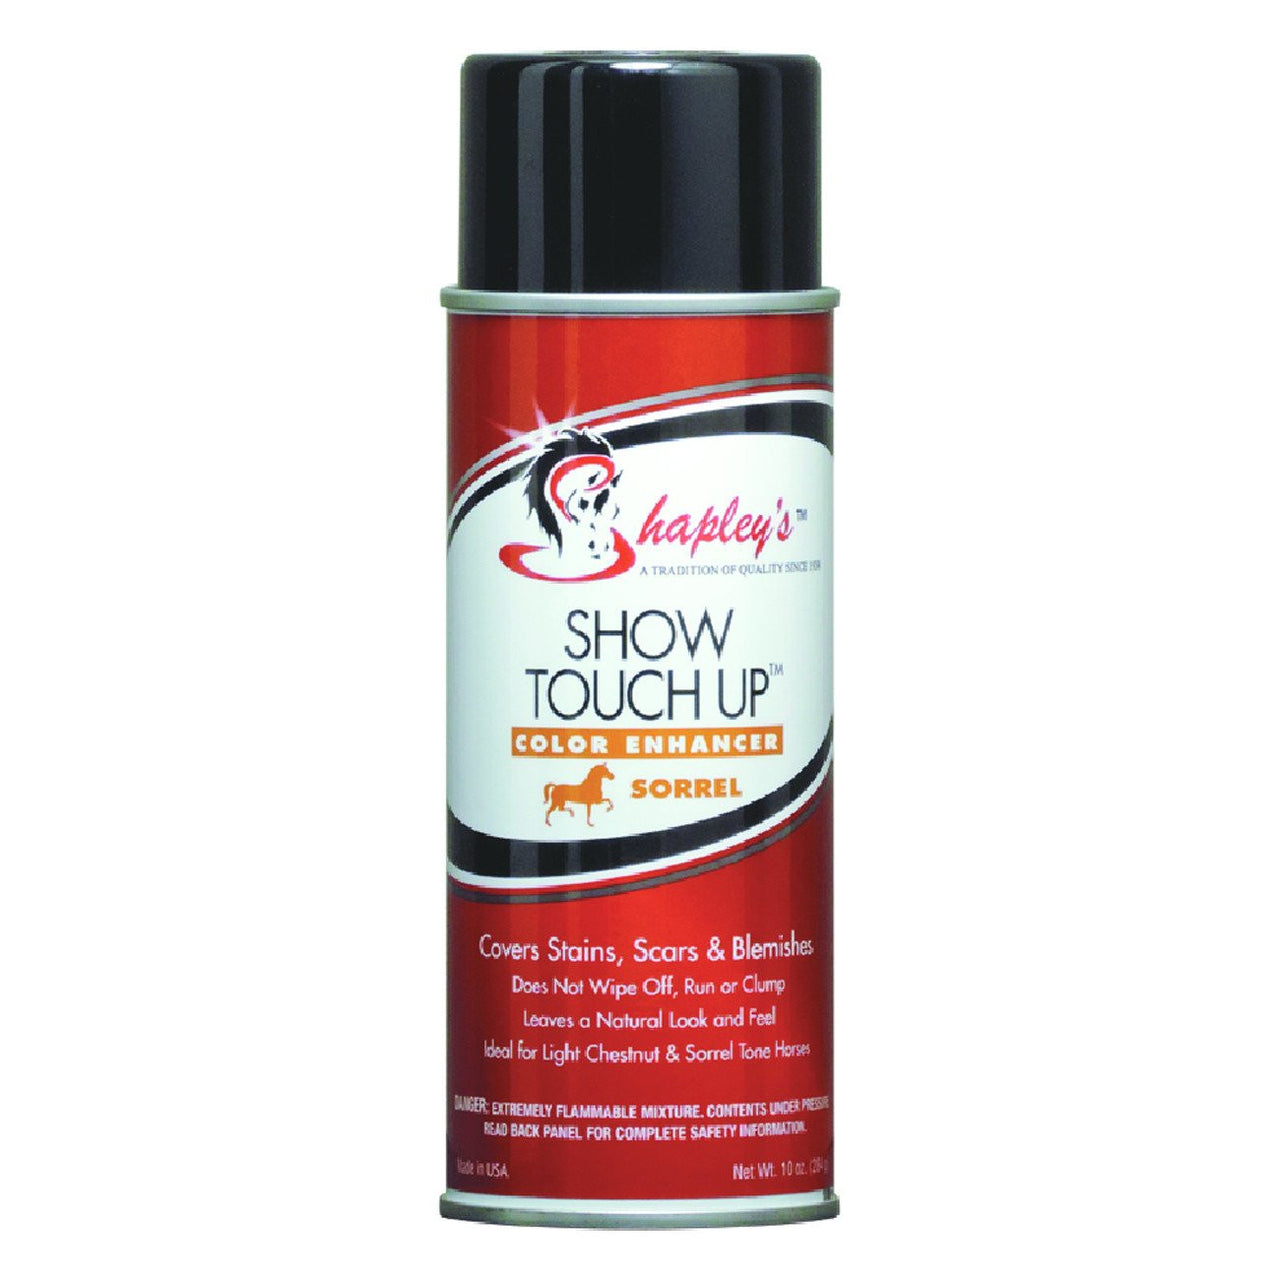 Shapleys Show Touch Up 295Ml Aerosol Spray Sorrel - Equine Care Shapleys - Canada